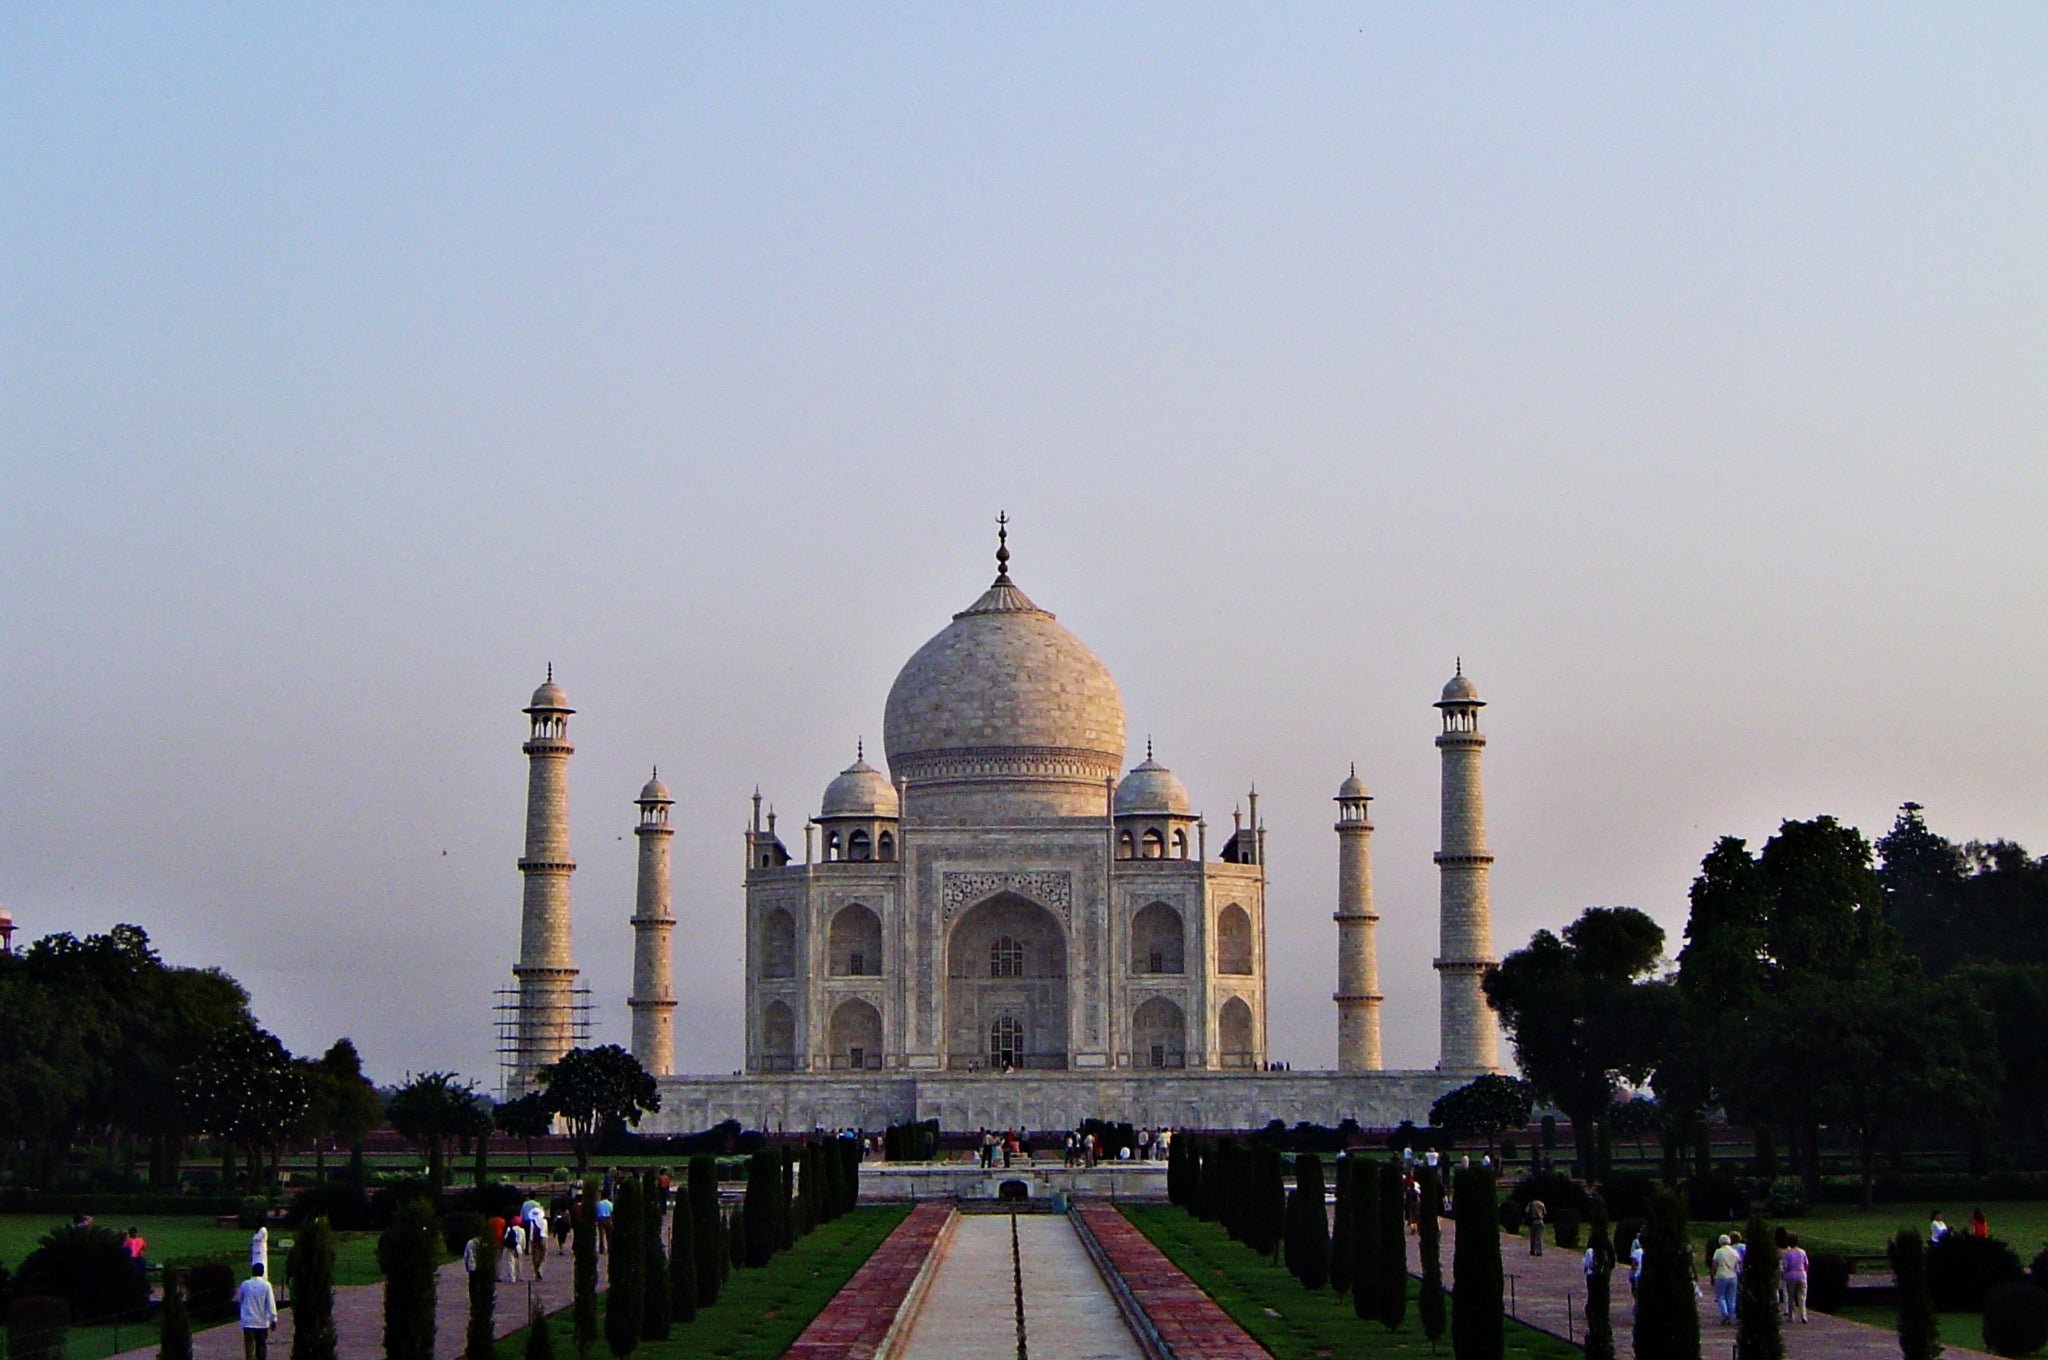 Edificio en Taj Mahal